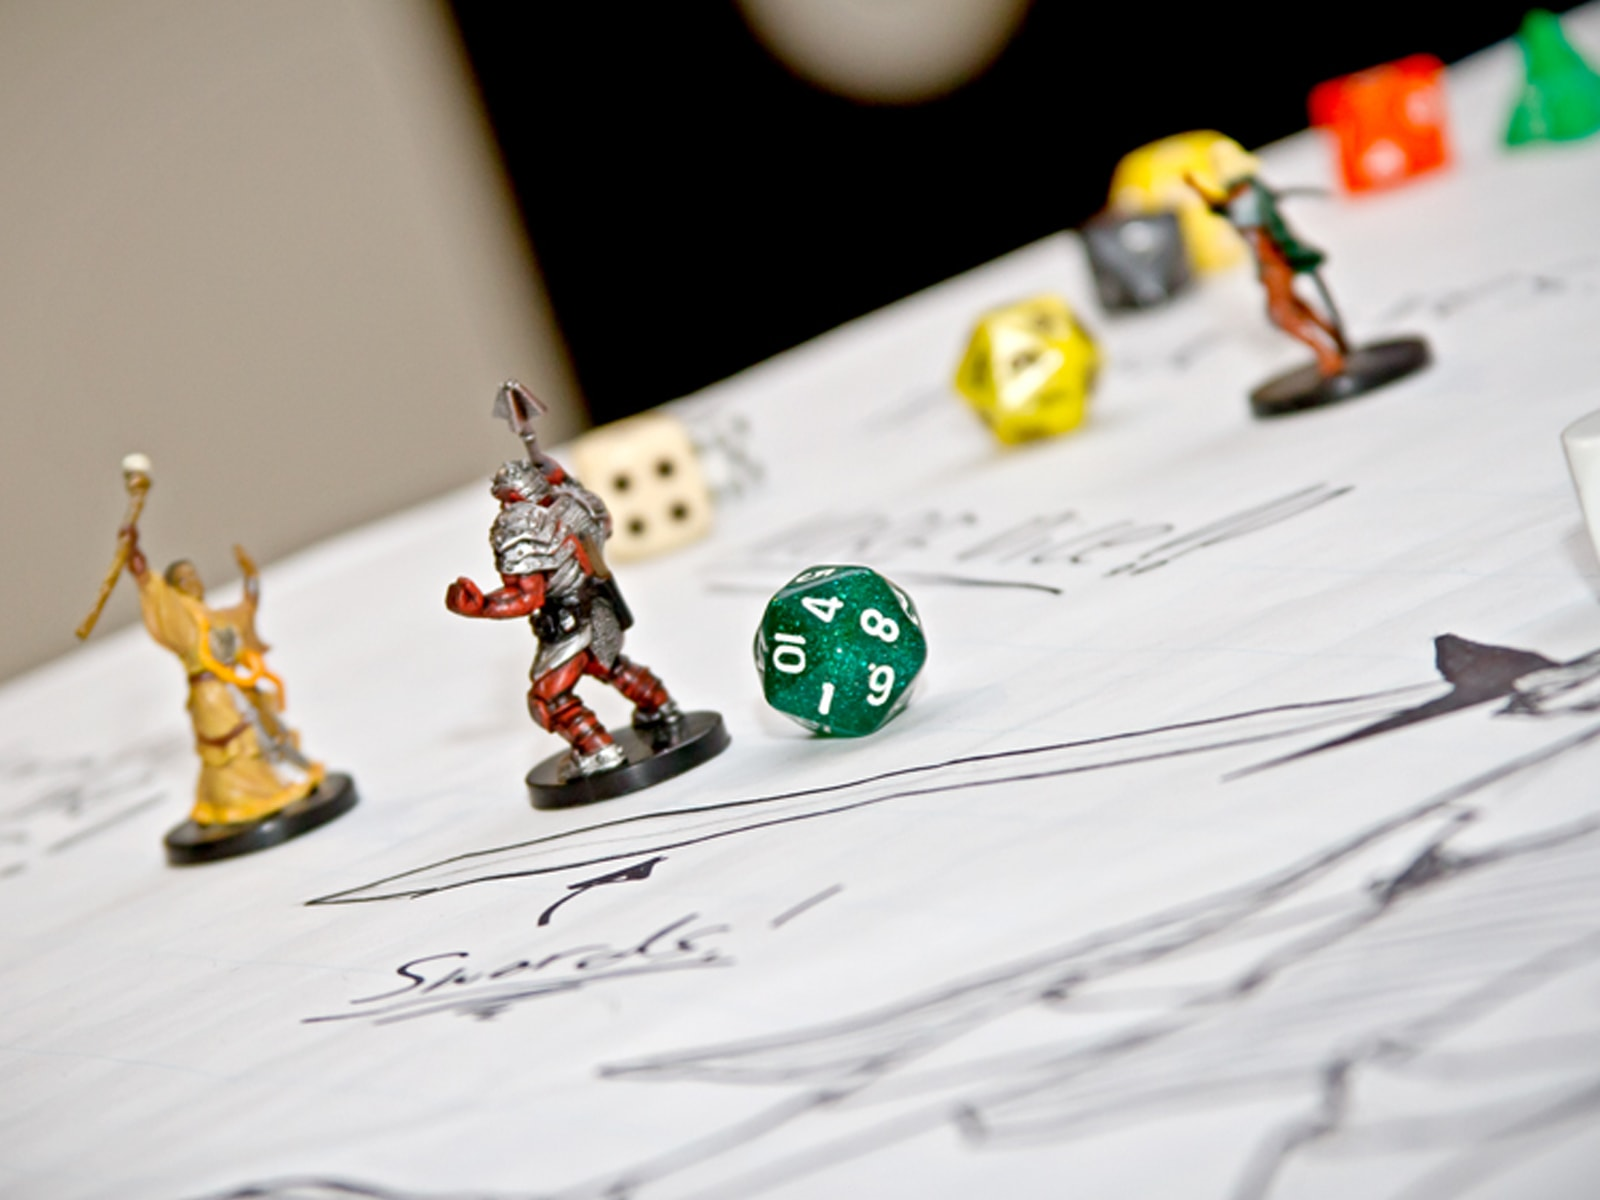 Close-up of board game figurines and 10-sided die